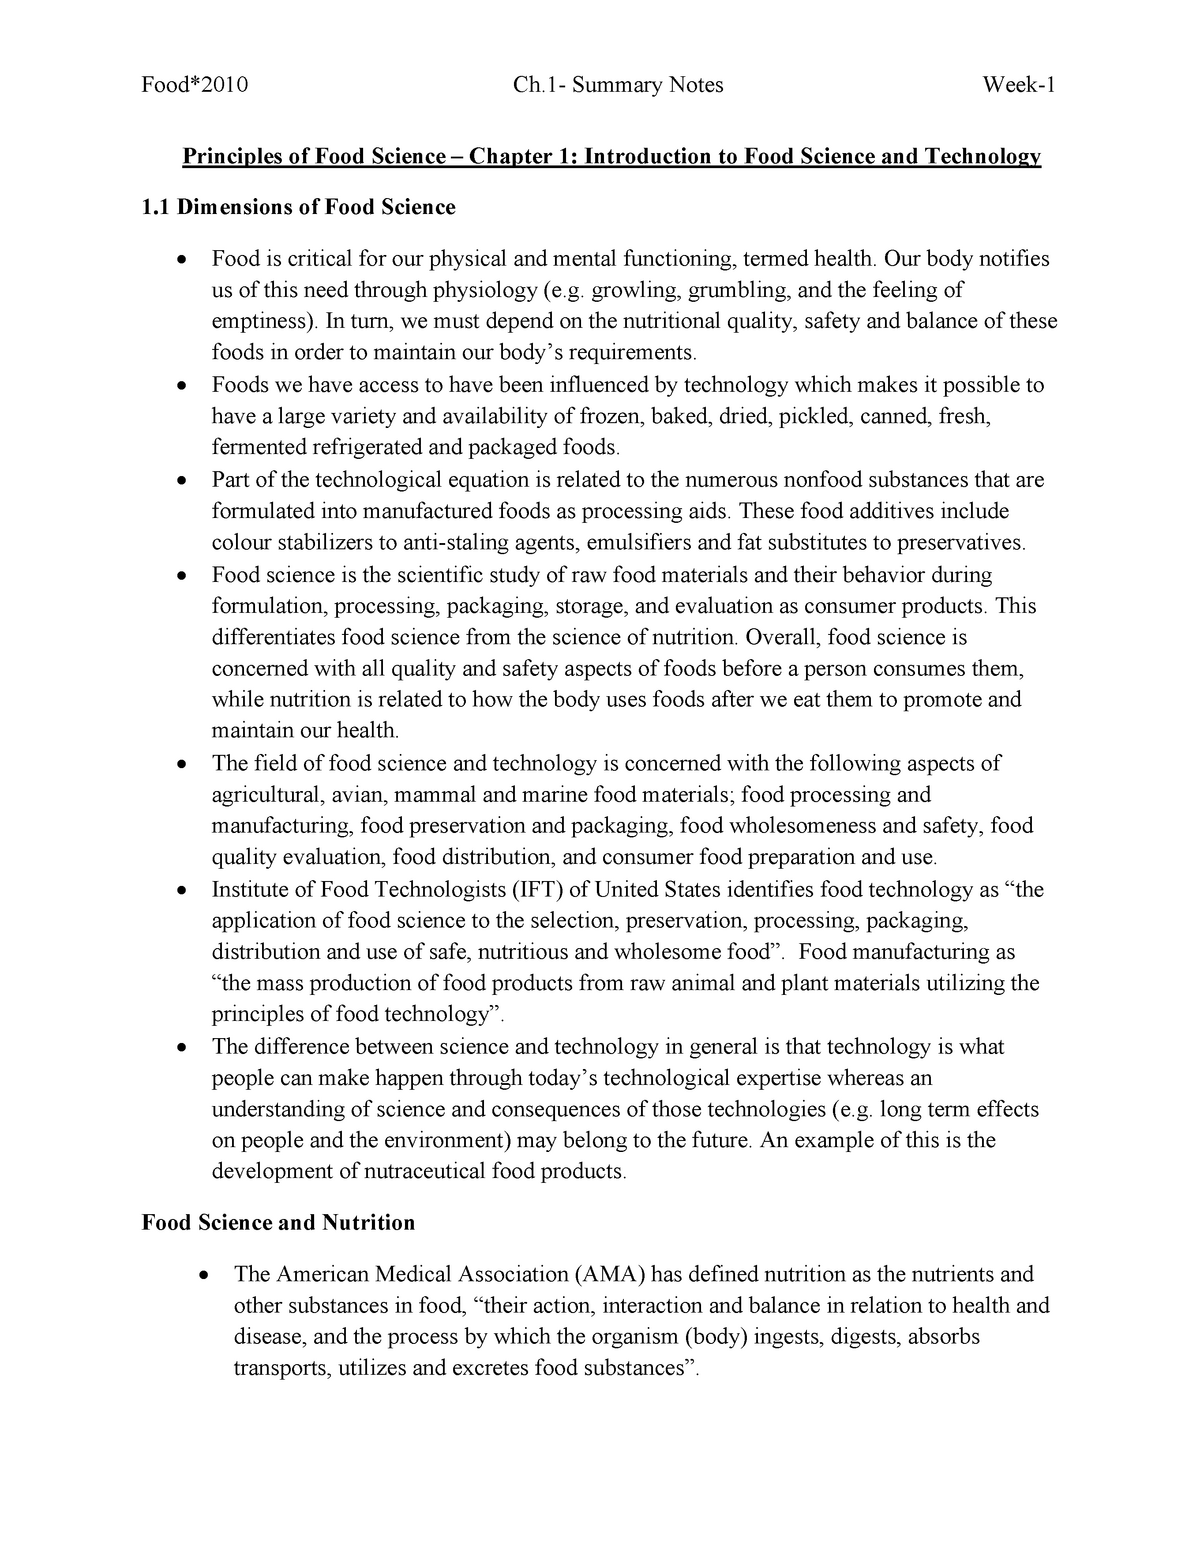 Summary Principles of Food Science SW: complete - Food2010